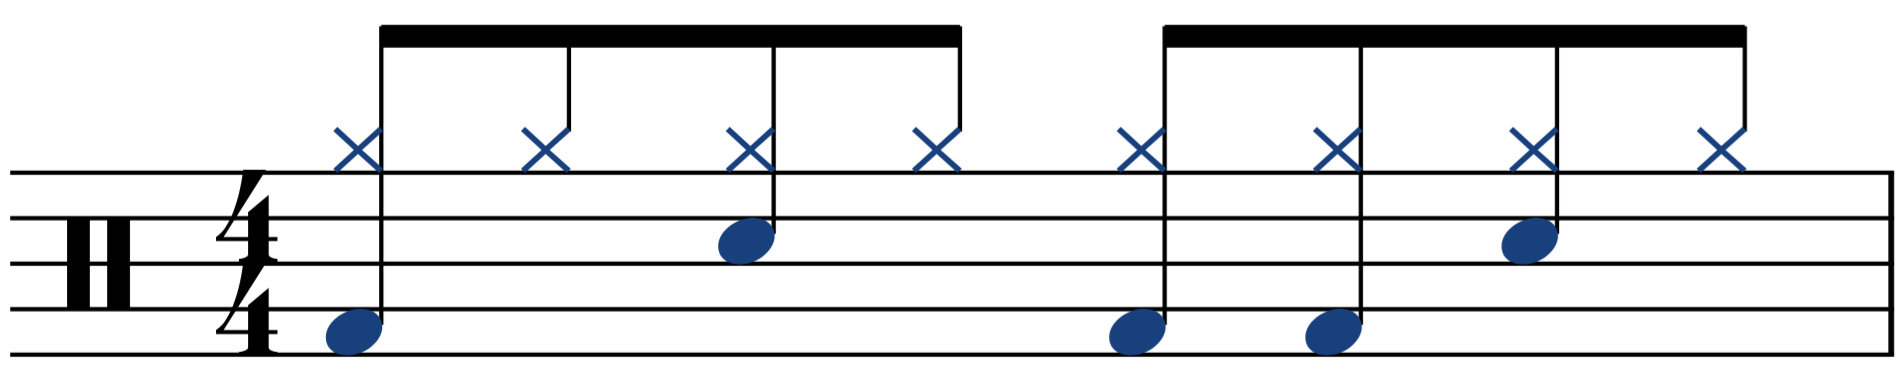 Introduction to Voices in Drum Set Notation